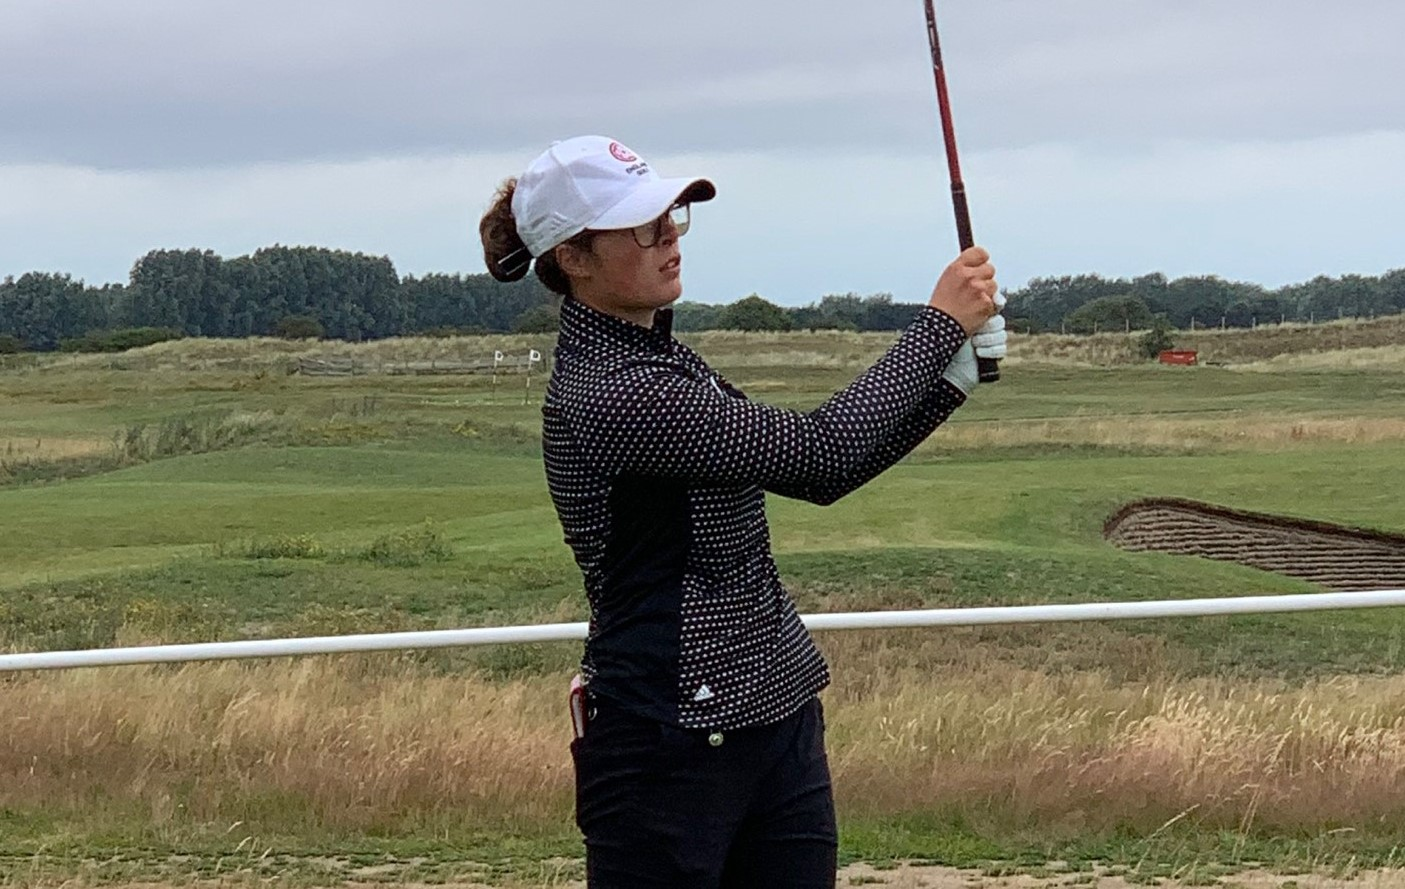 Rose Ladies Series: Toy finds joy with golfing grind